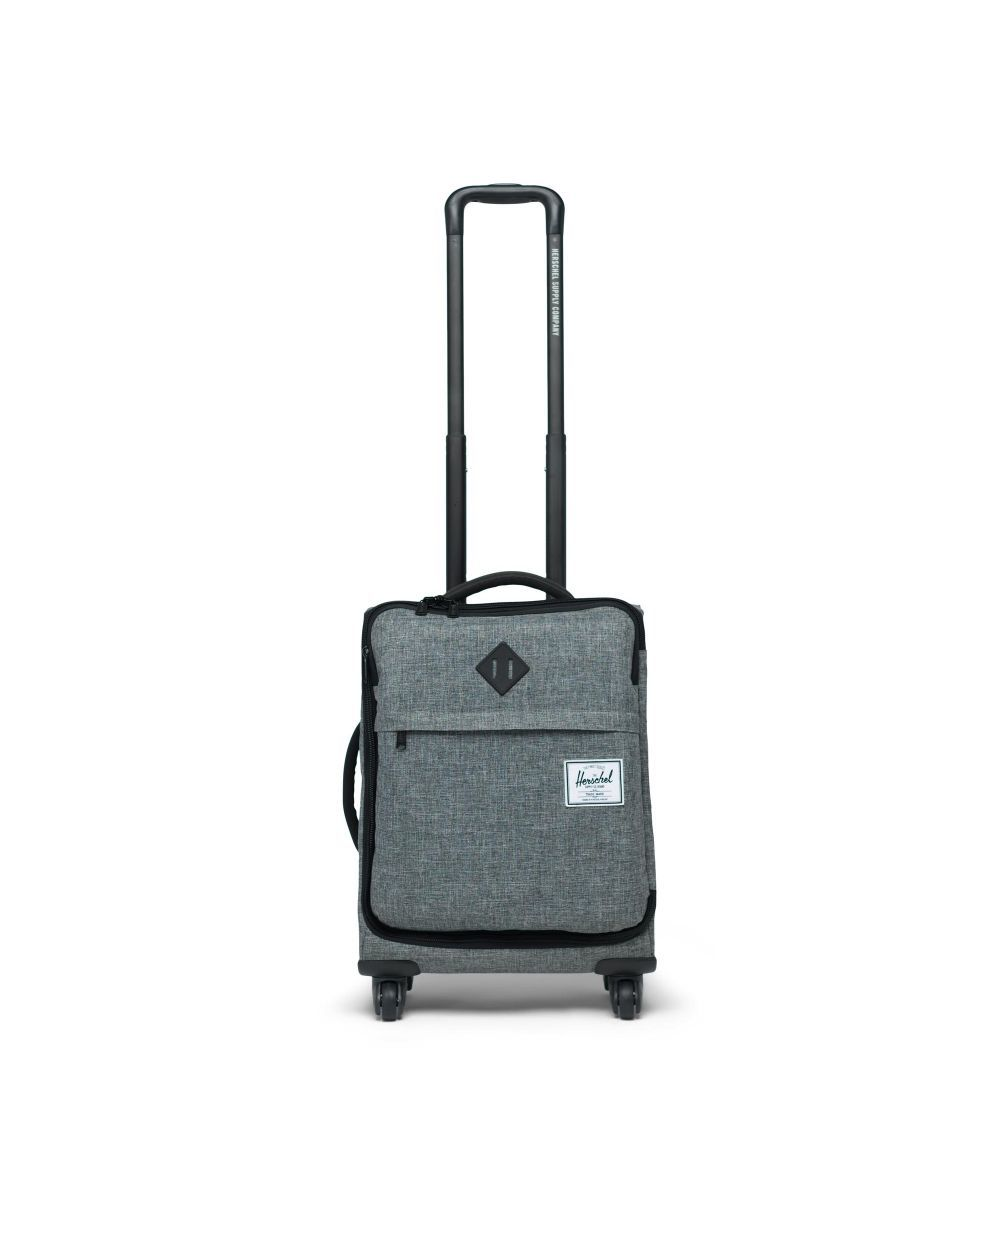 Highland Carry-on Luggage Herschel Supply Co